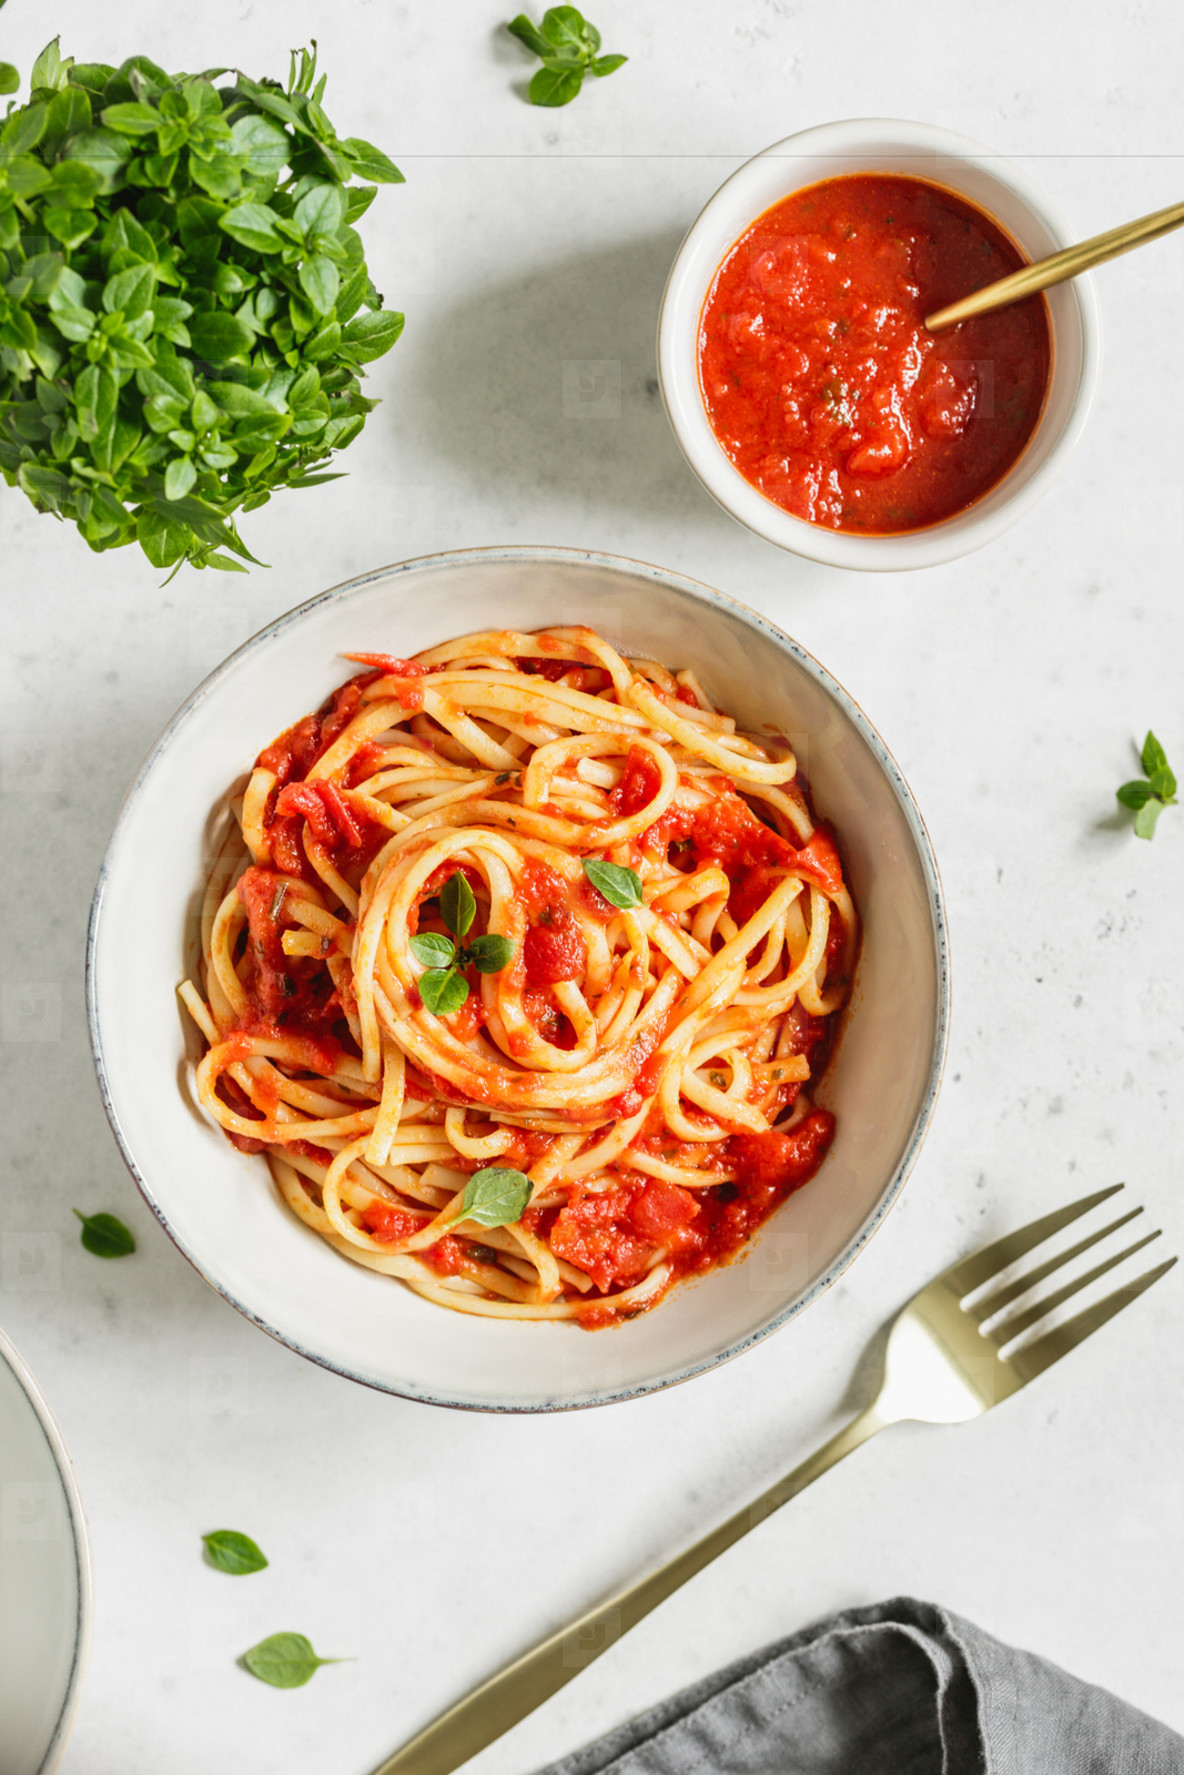 Top view of traditional pasta with tomato and Greek basil sauce in a ceramic bowl on a white table